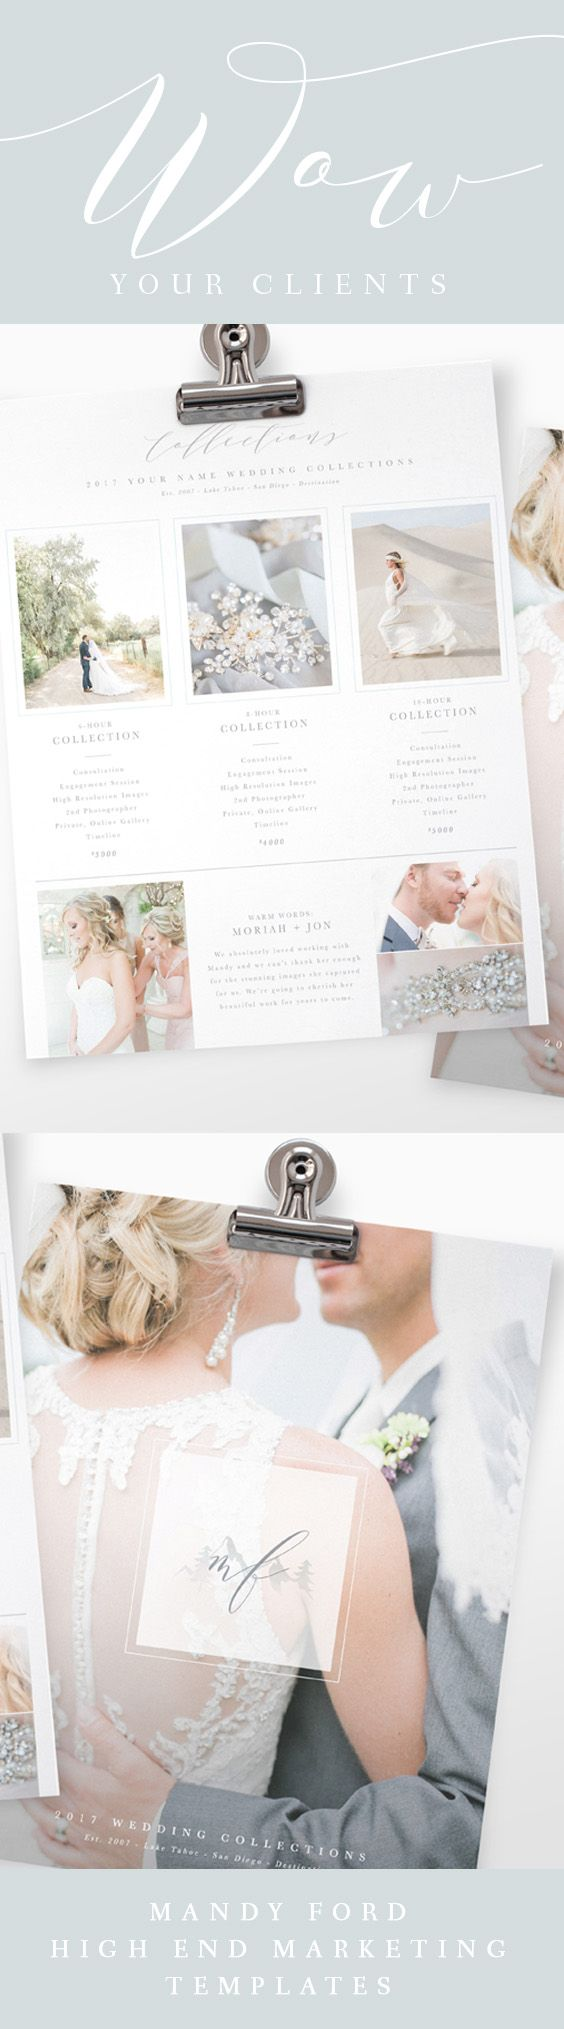 Guide Templates Photography Pricing Guide Template  Wedding Pricing Guide .